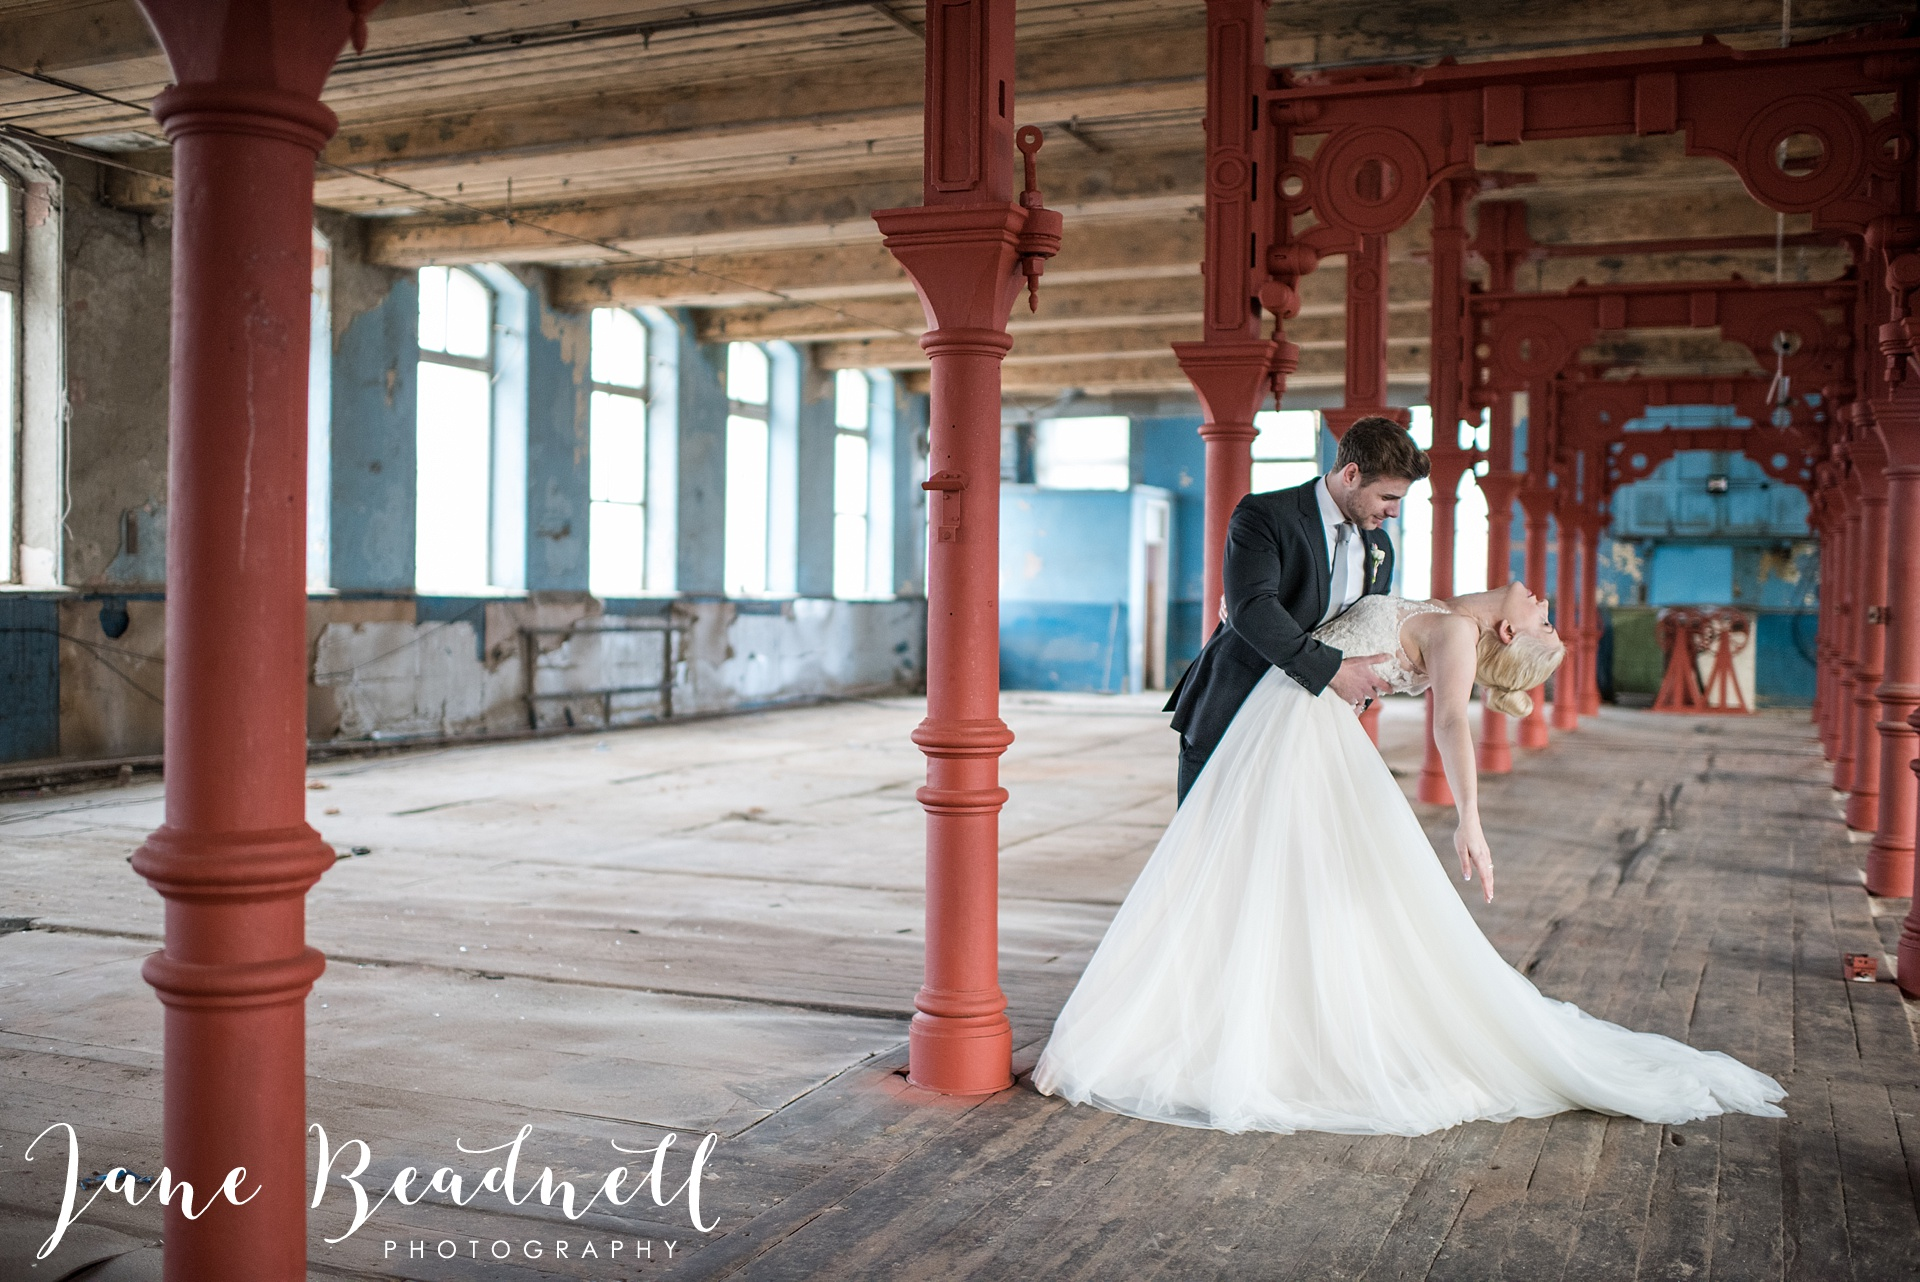 Ballet themed styled wedding shoot at Dalton Mills by Jane Beadnell Photography-0_0037